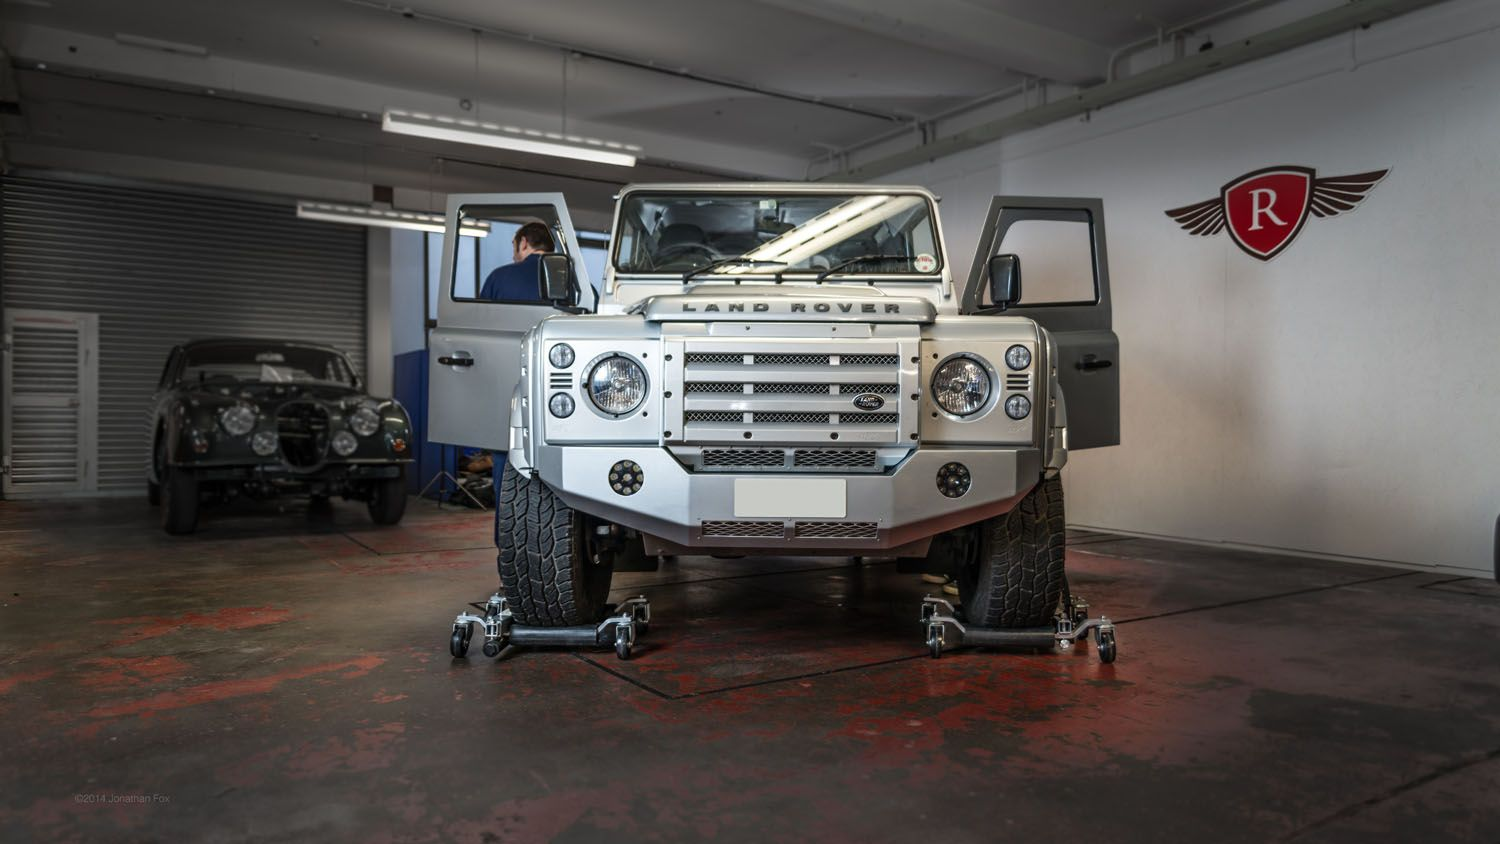 Land rover defender with body kit, custom leather upgrade seats